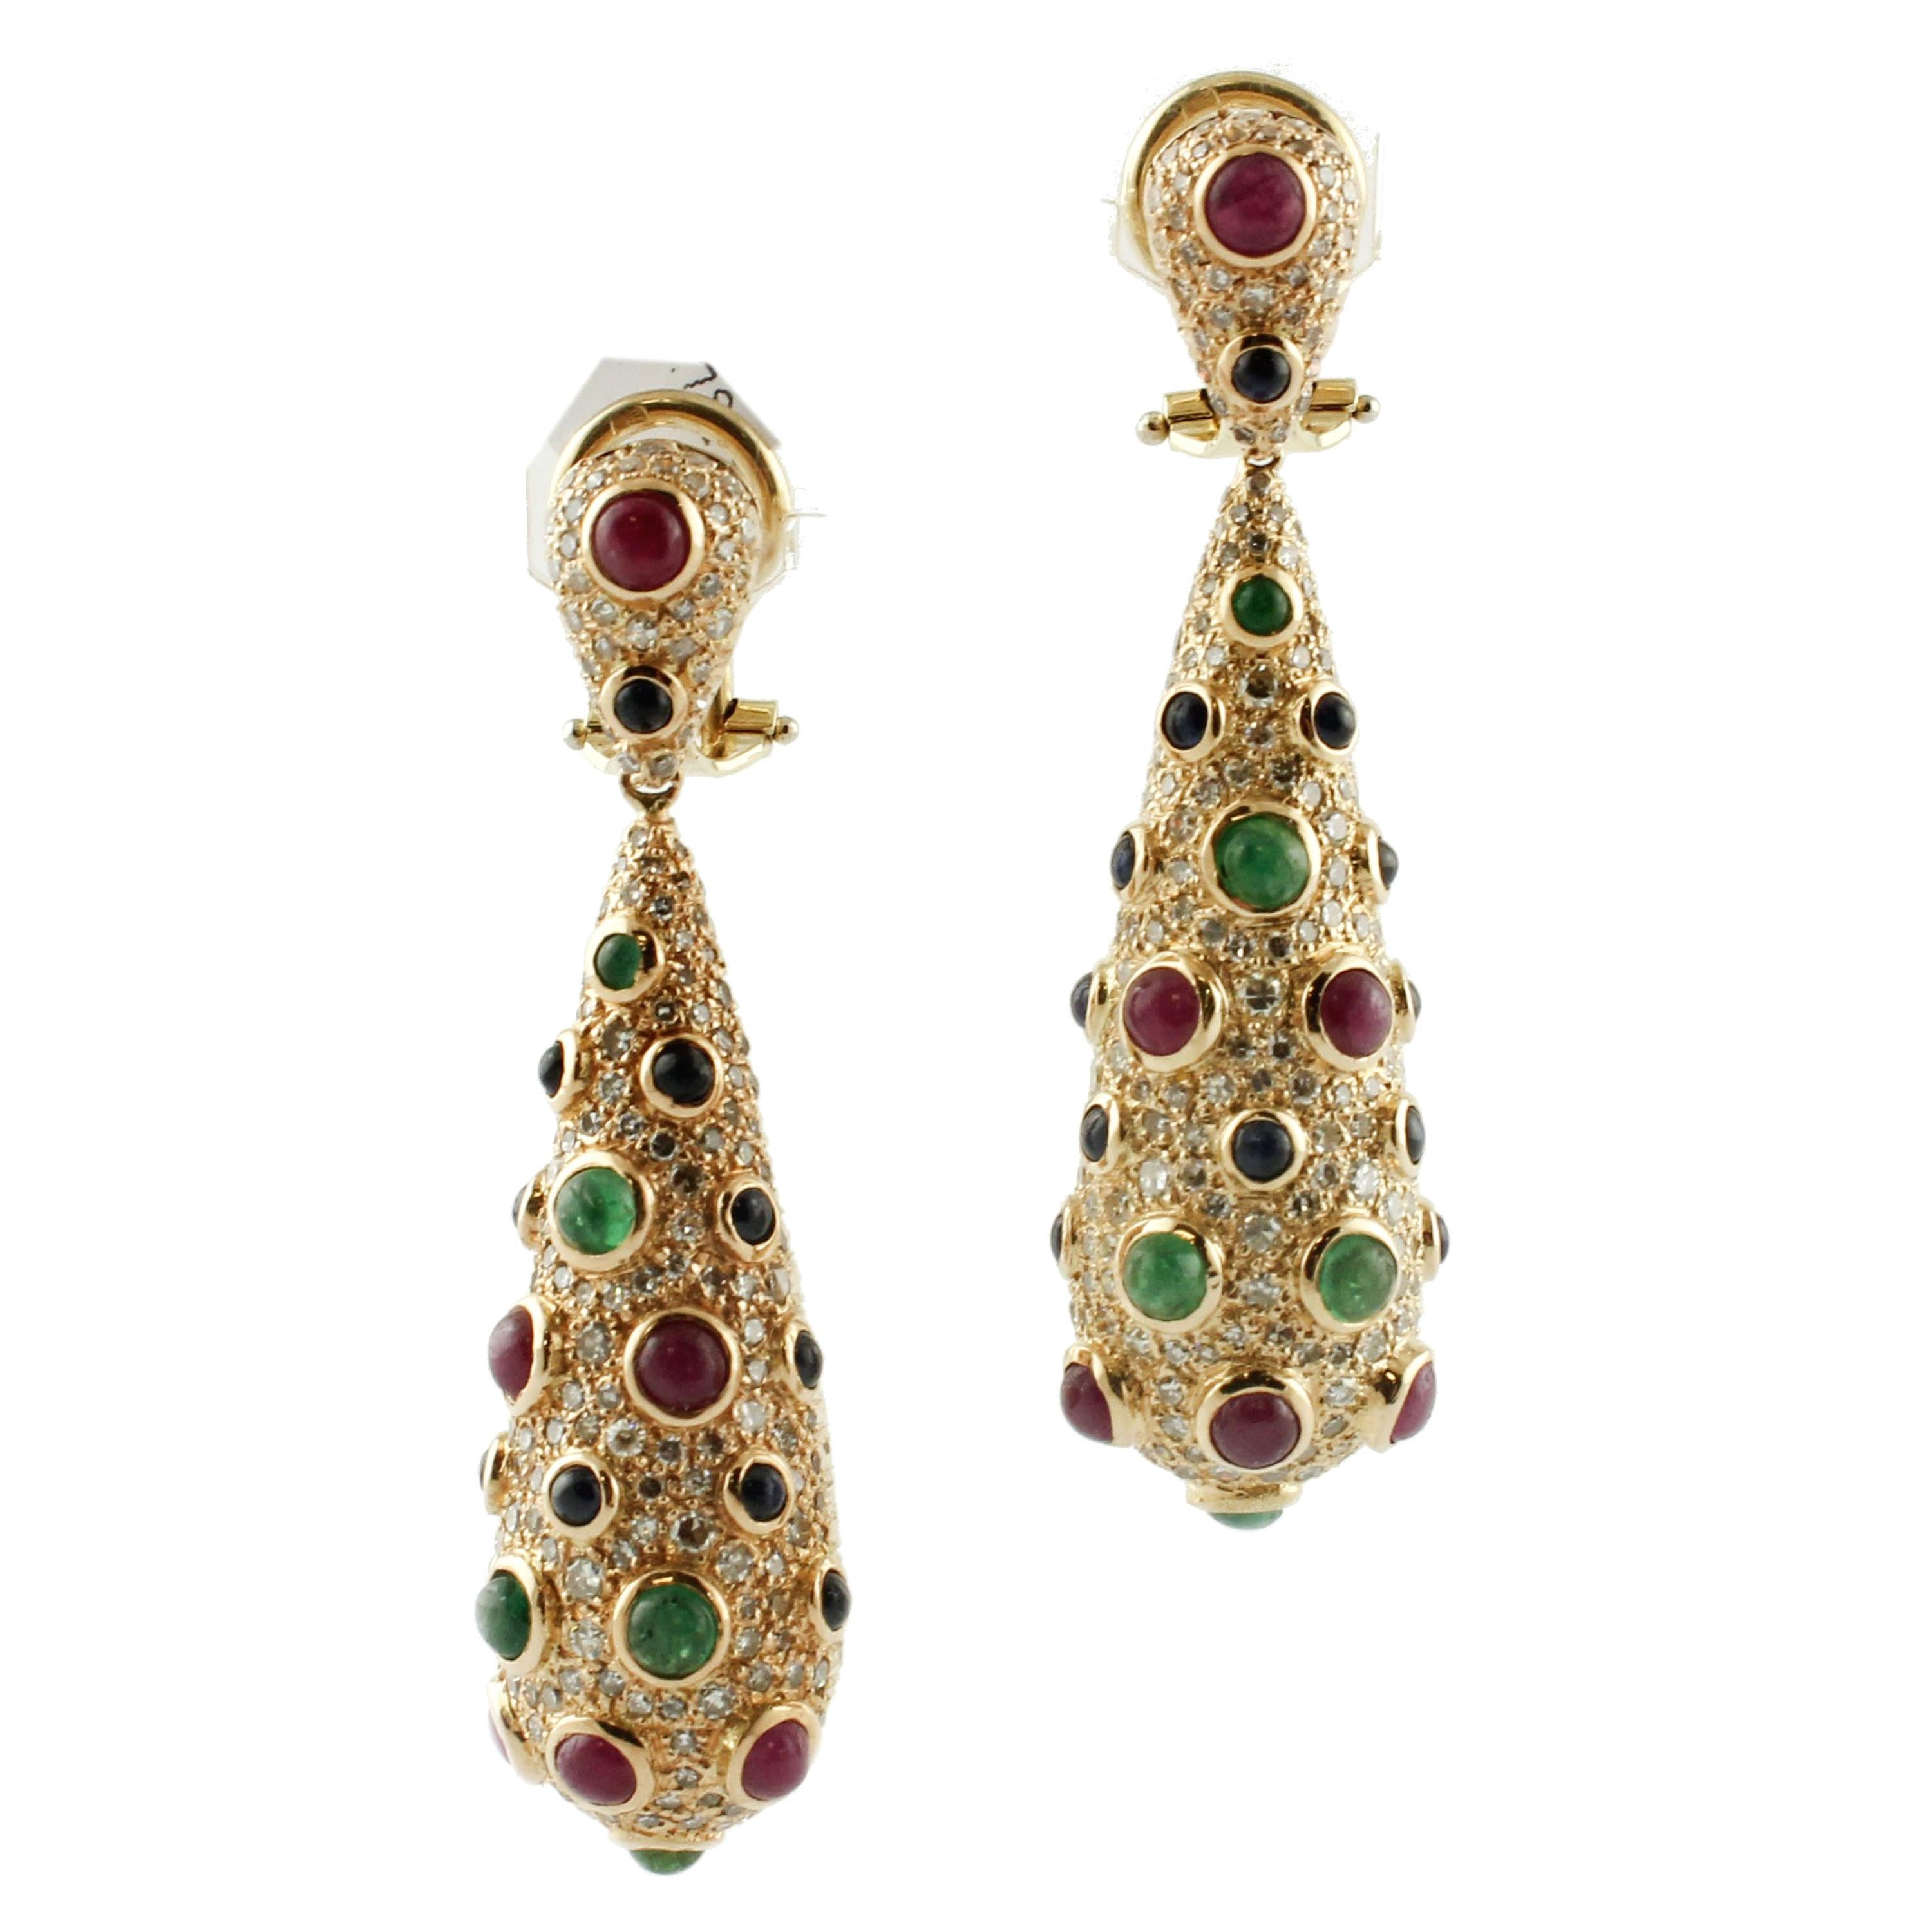 Rubies Emeralds Sapphires Diamonds Rose Gold Cocktail Earrings